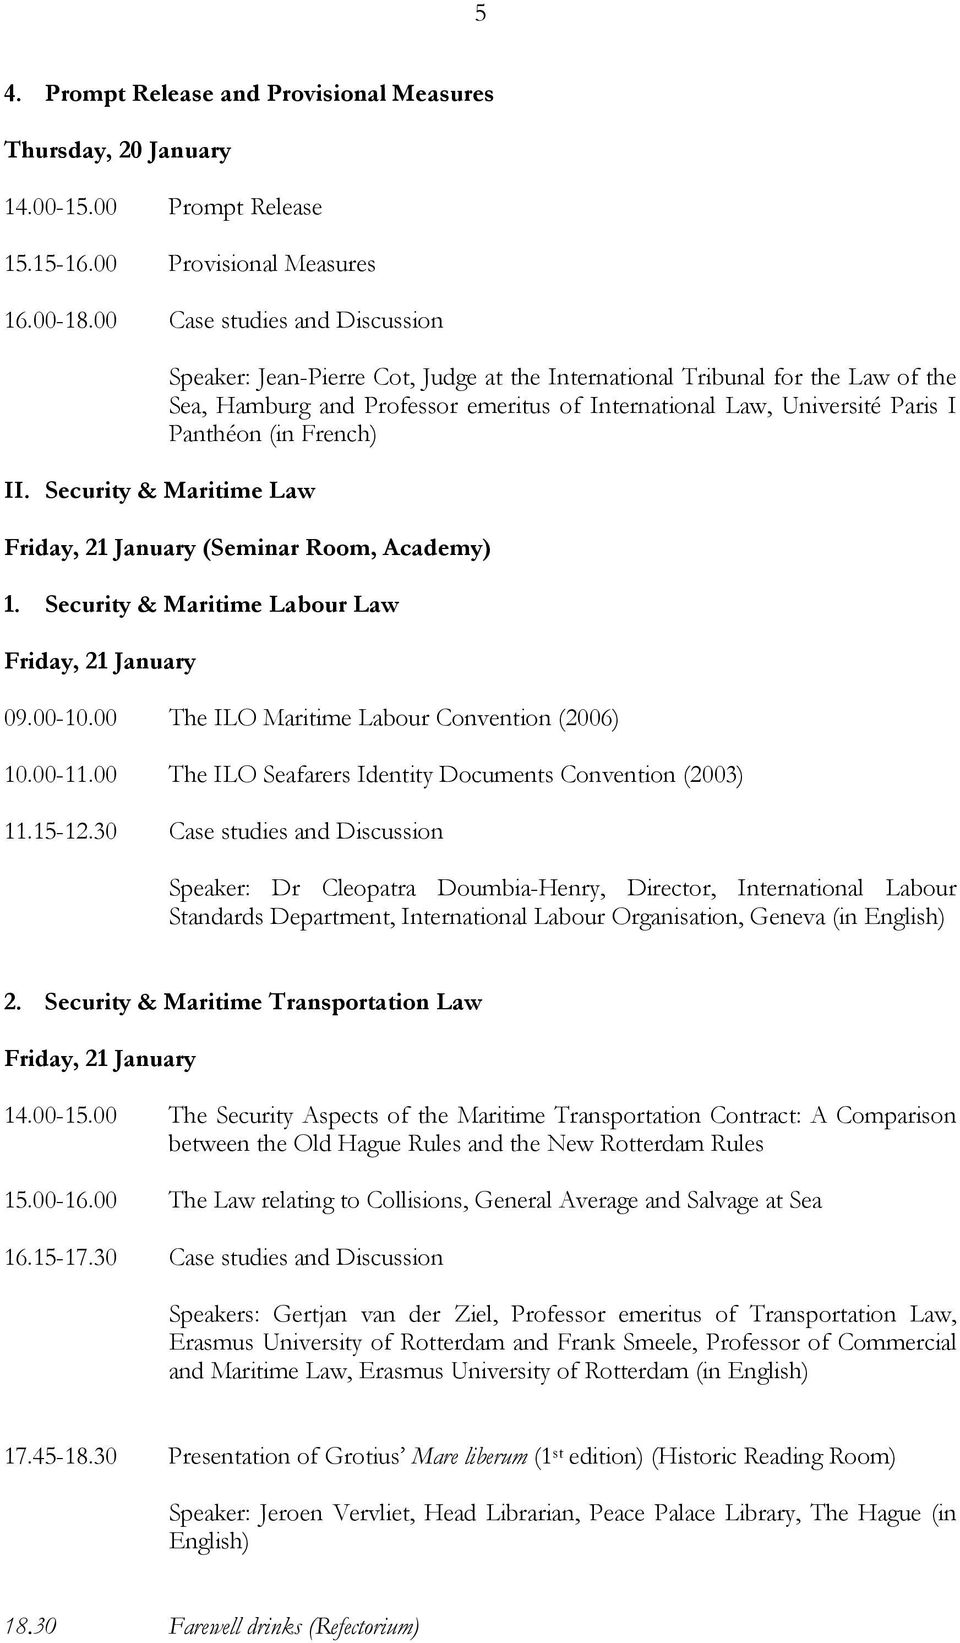 French) Friday, 21 January (Seminar Room, Academy) 1. Security & Maritime Labour Law Friday, 21 January 09.00-10.00 The ILO Maritime Labour Convention (2006) 10.00-11.